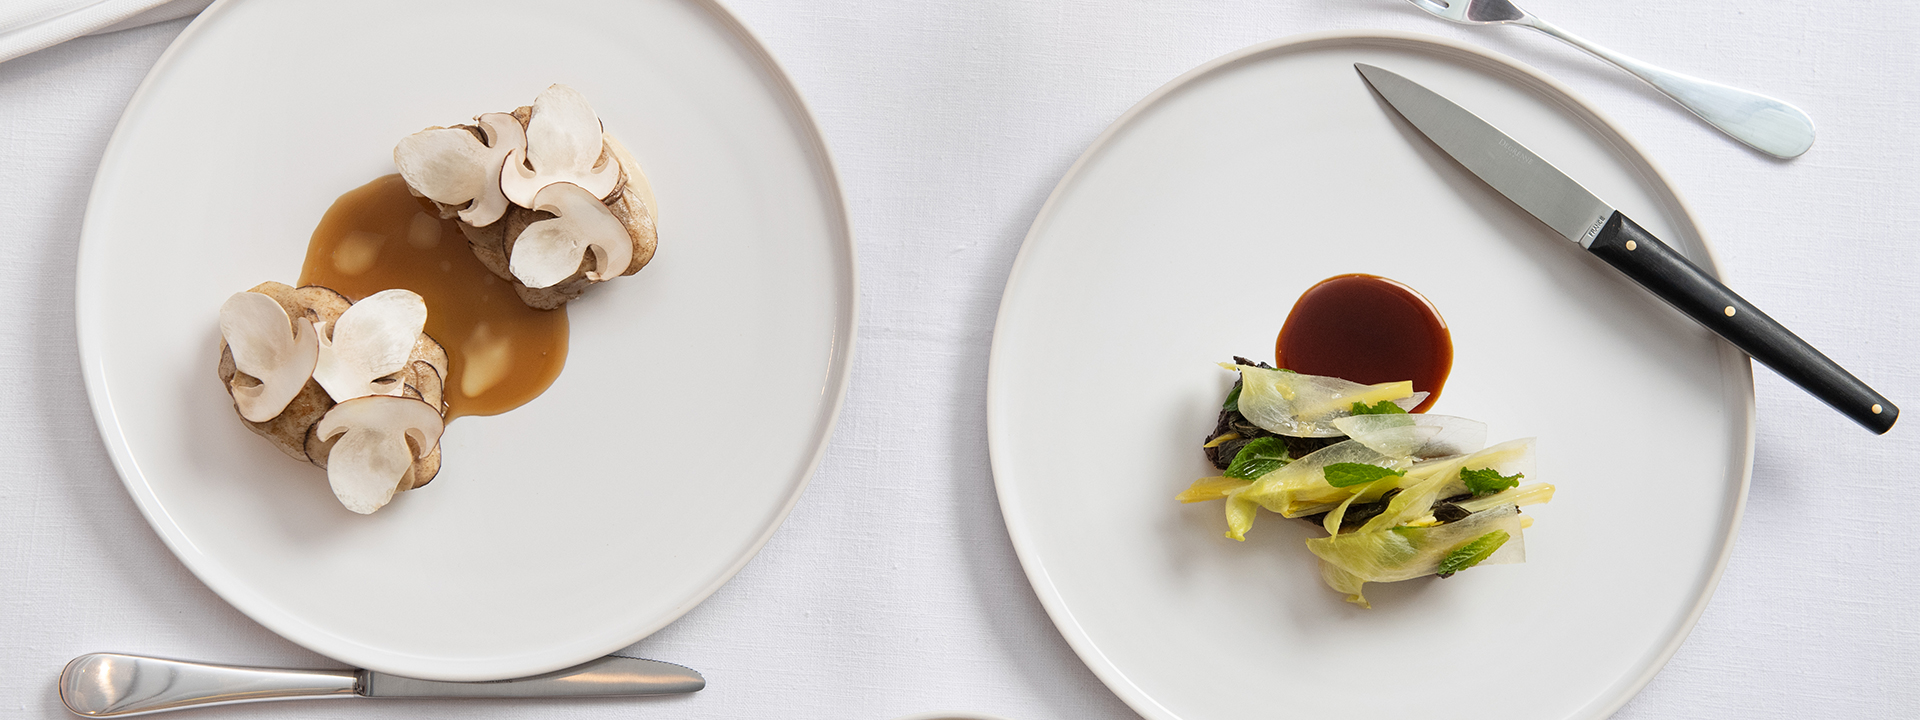 Two seasonal dishes from Davies and Brook restaurant in Mayfair at Claridge's